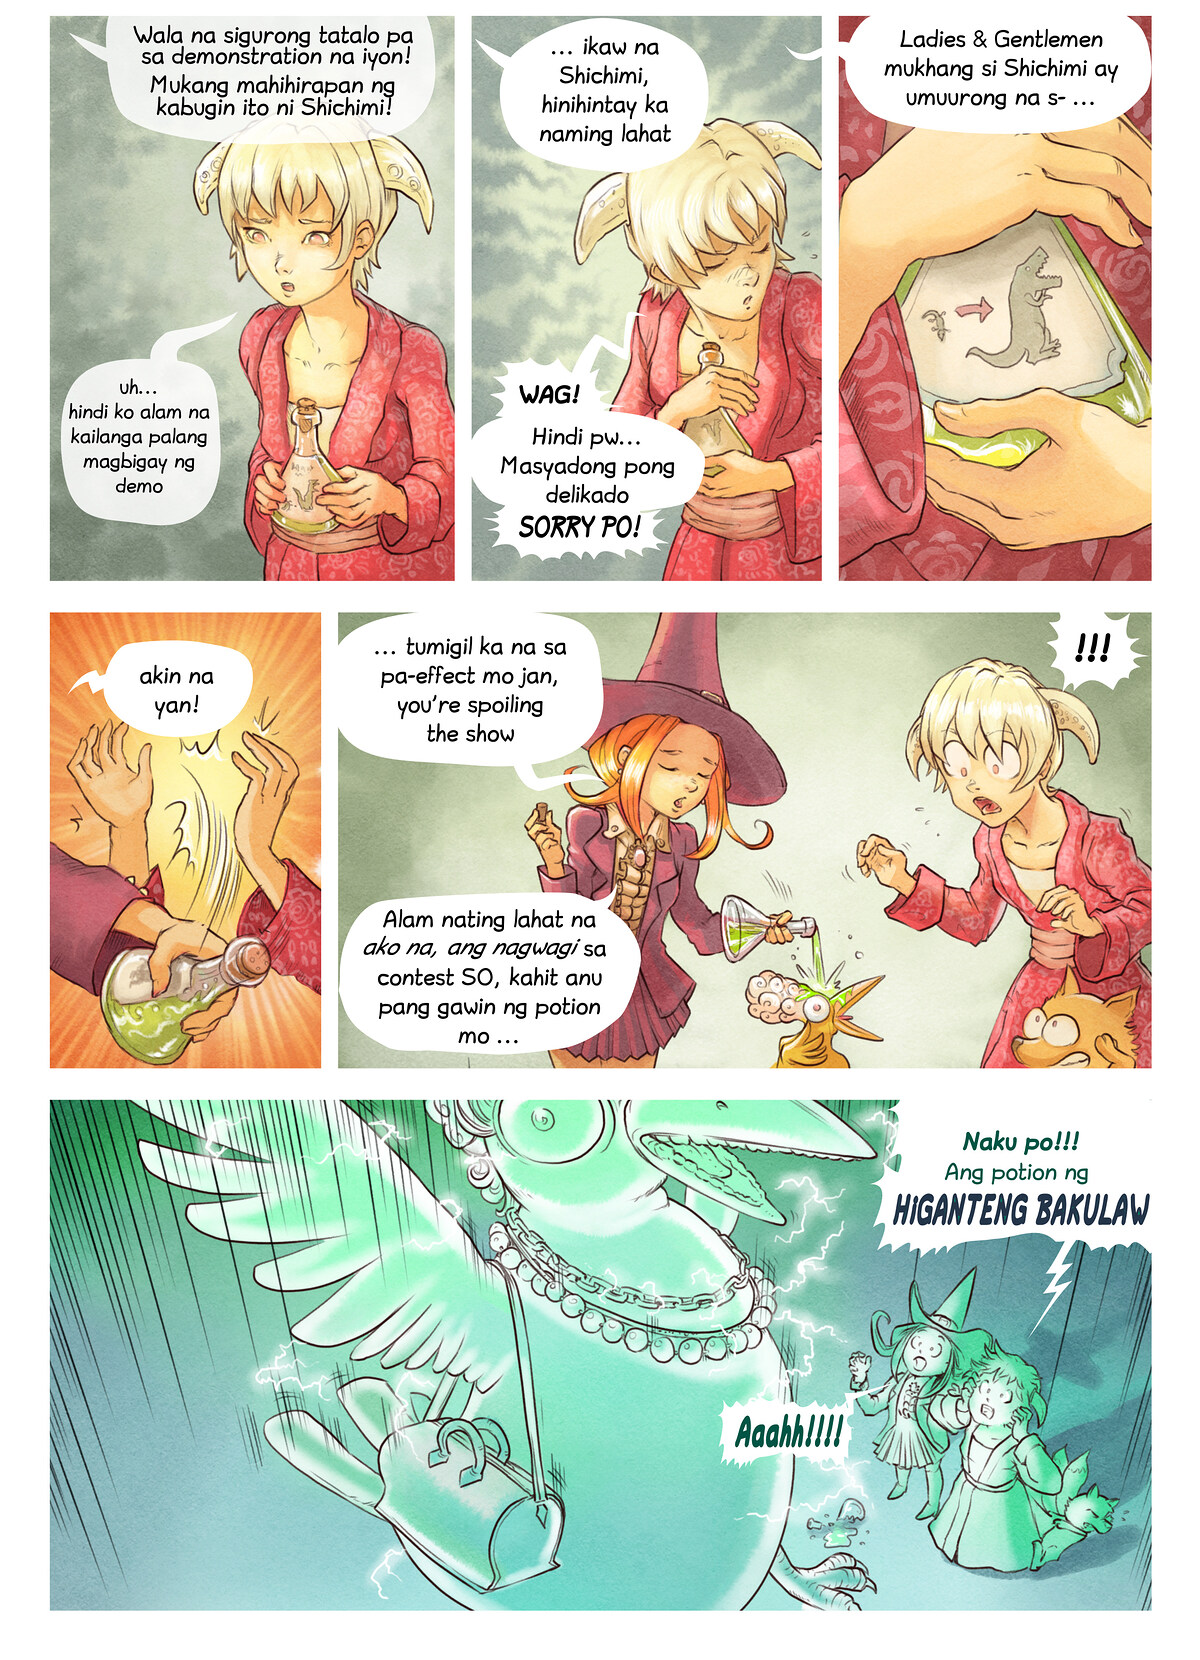 A webcomic page of Pepper&Carrot, episode 6 [ph], page 6